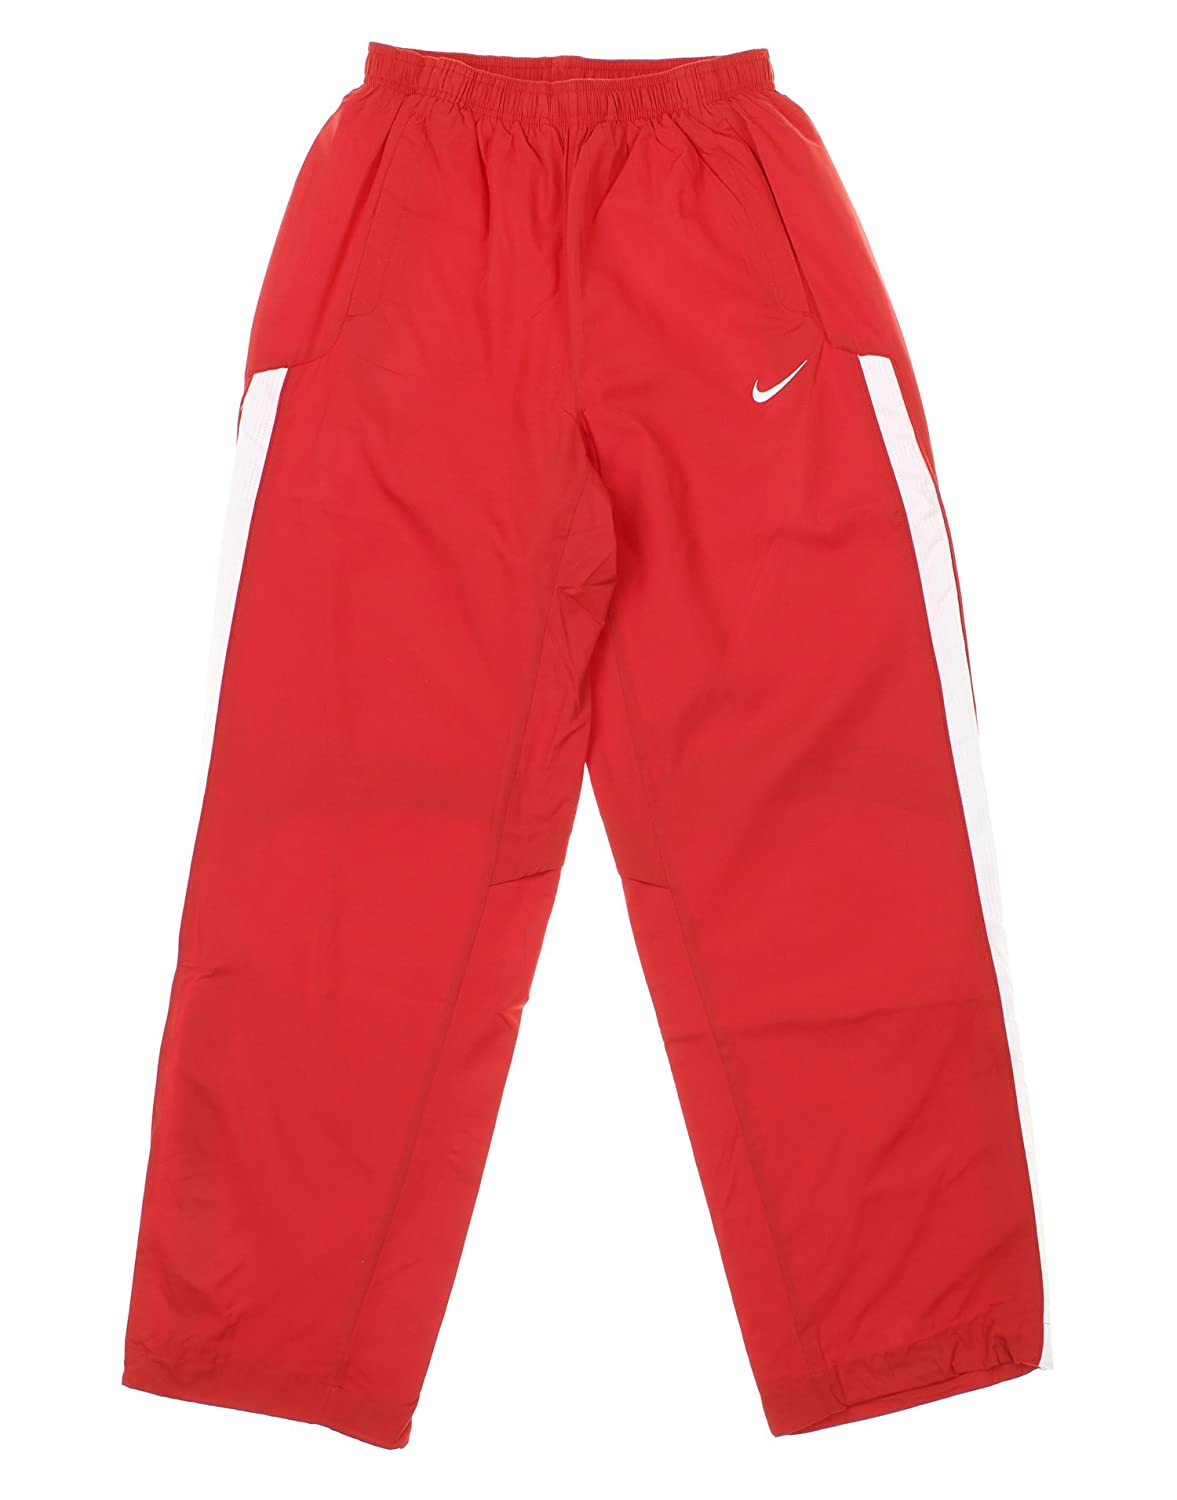 6af6489d0 Nike Men's Championship III Warm-Up Pants at Amazon Men's Clothing store: